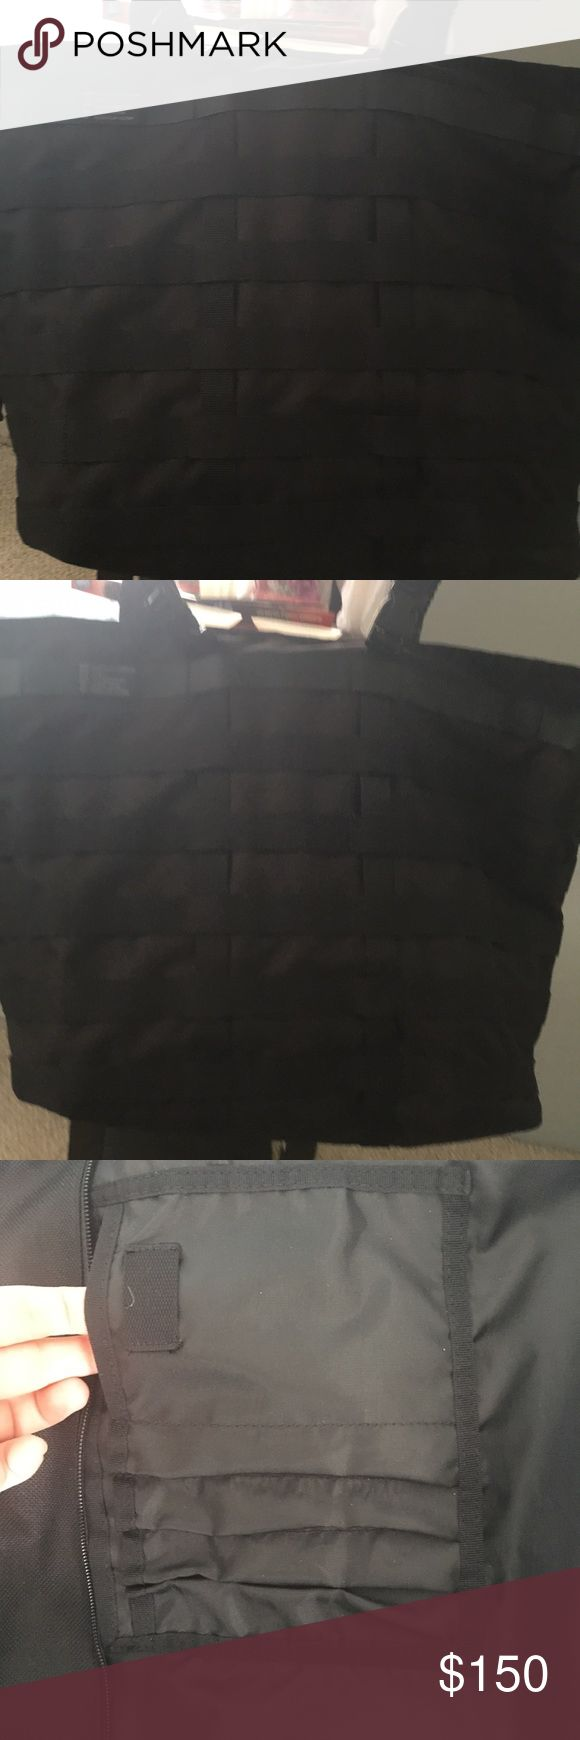 Nike tote bag Black material tote bag .New without tag Nike Bags Totes